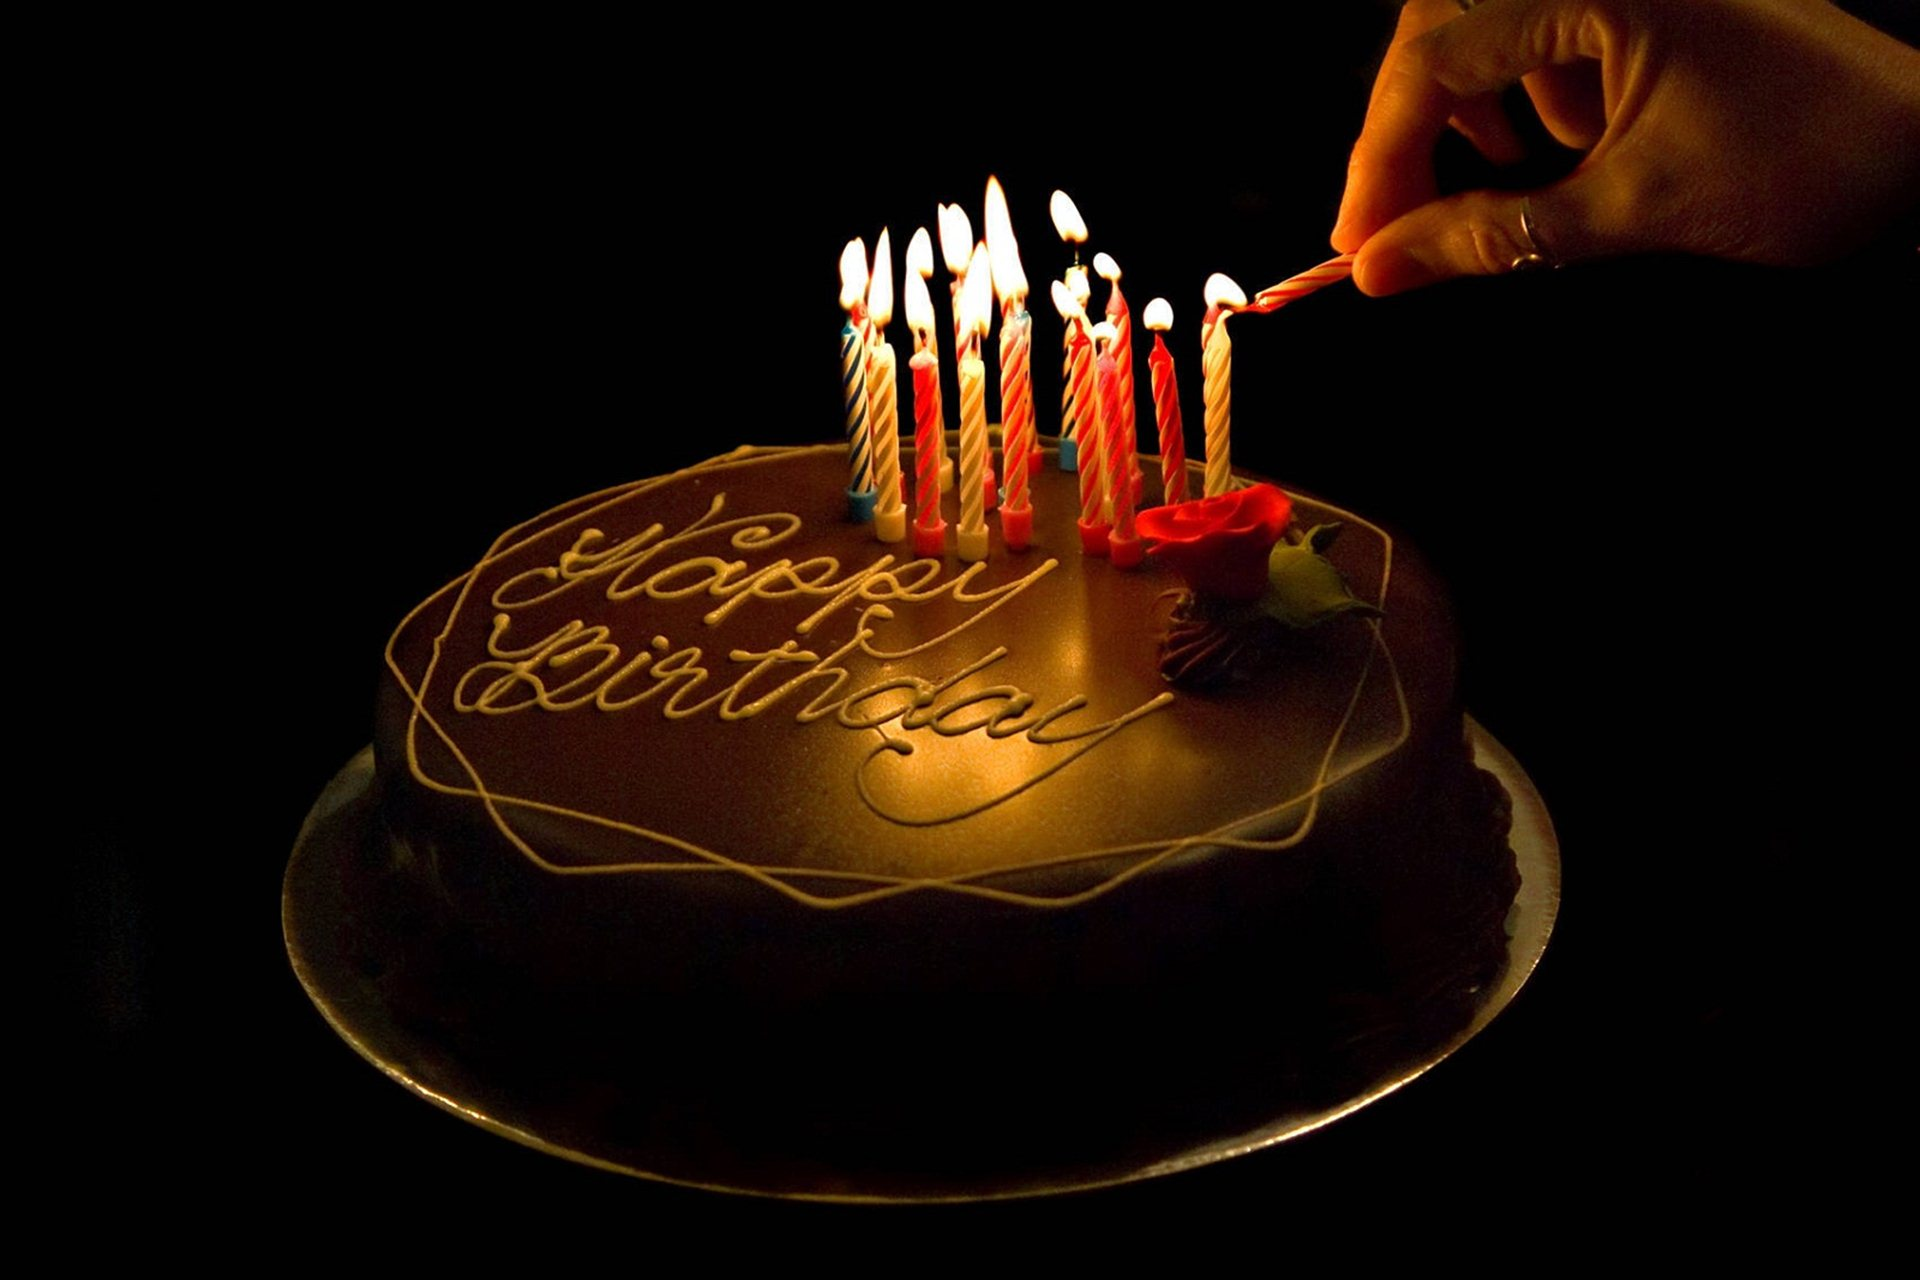 birthday cake live wallpaper ; Happy-Birthday-Cake-To-You-HD-Wallpaper-PIC-WSW1048263